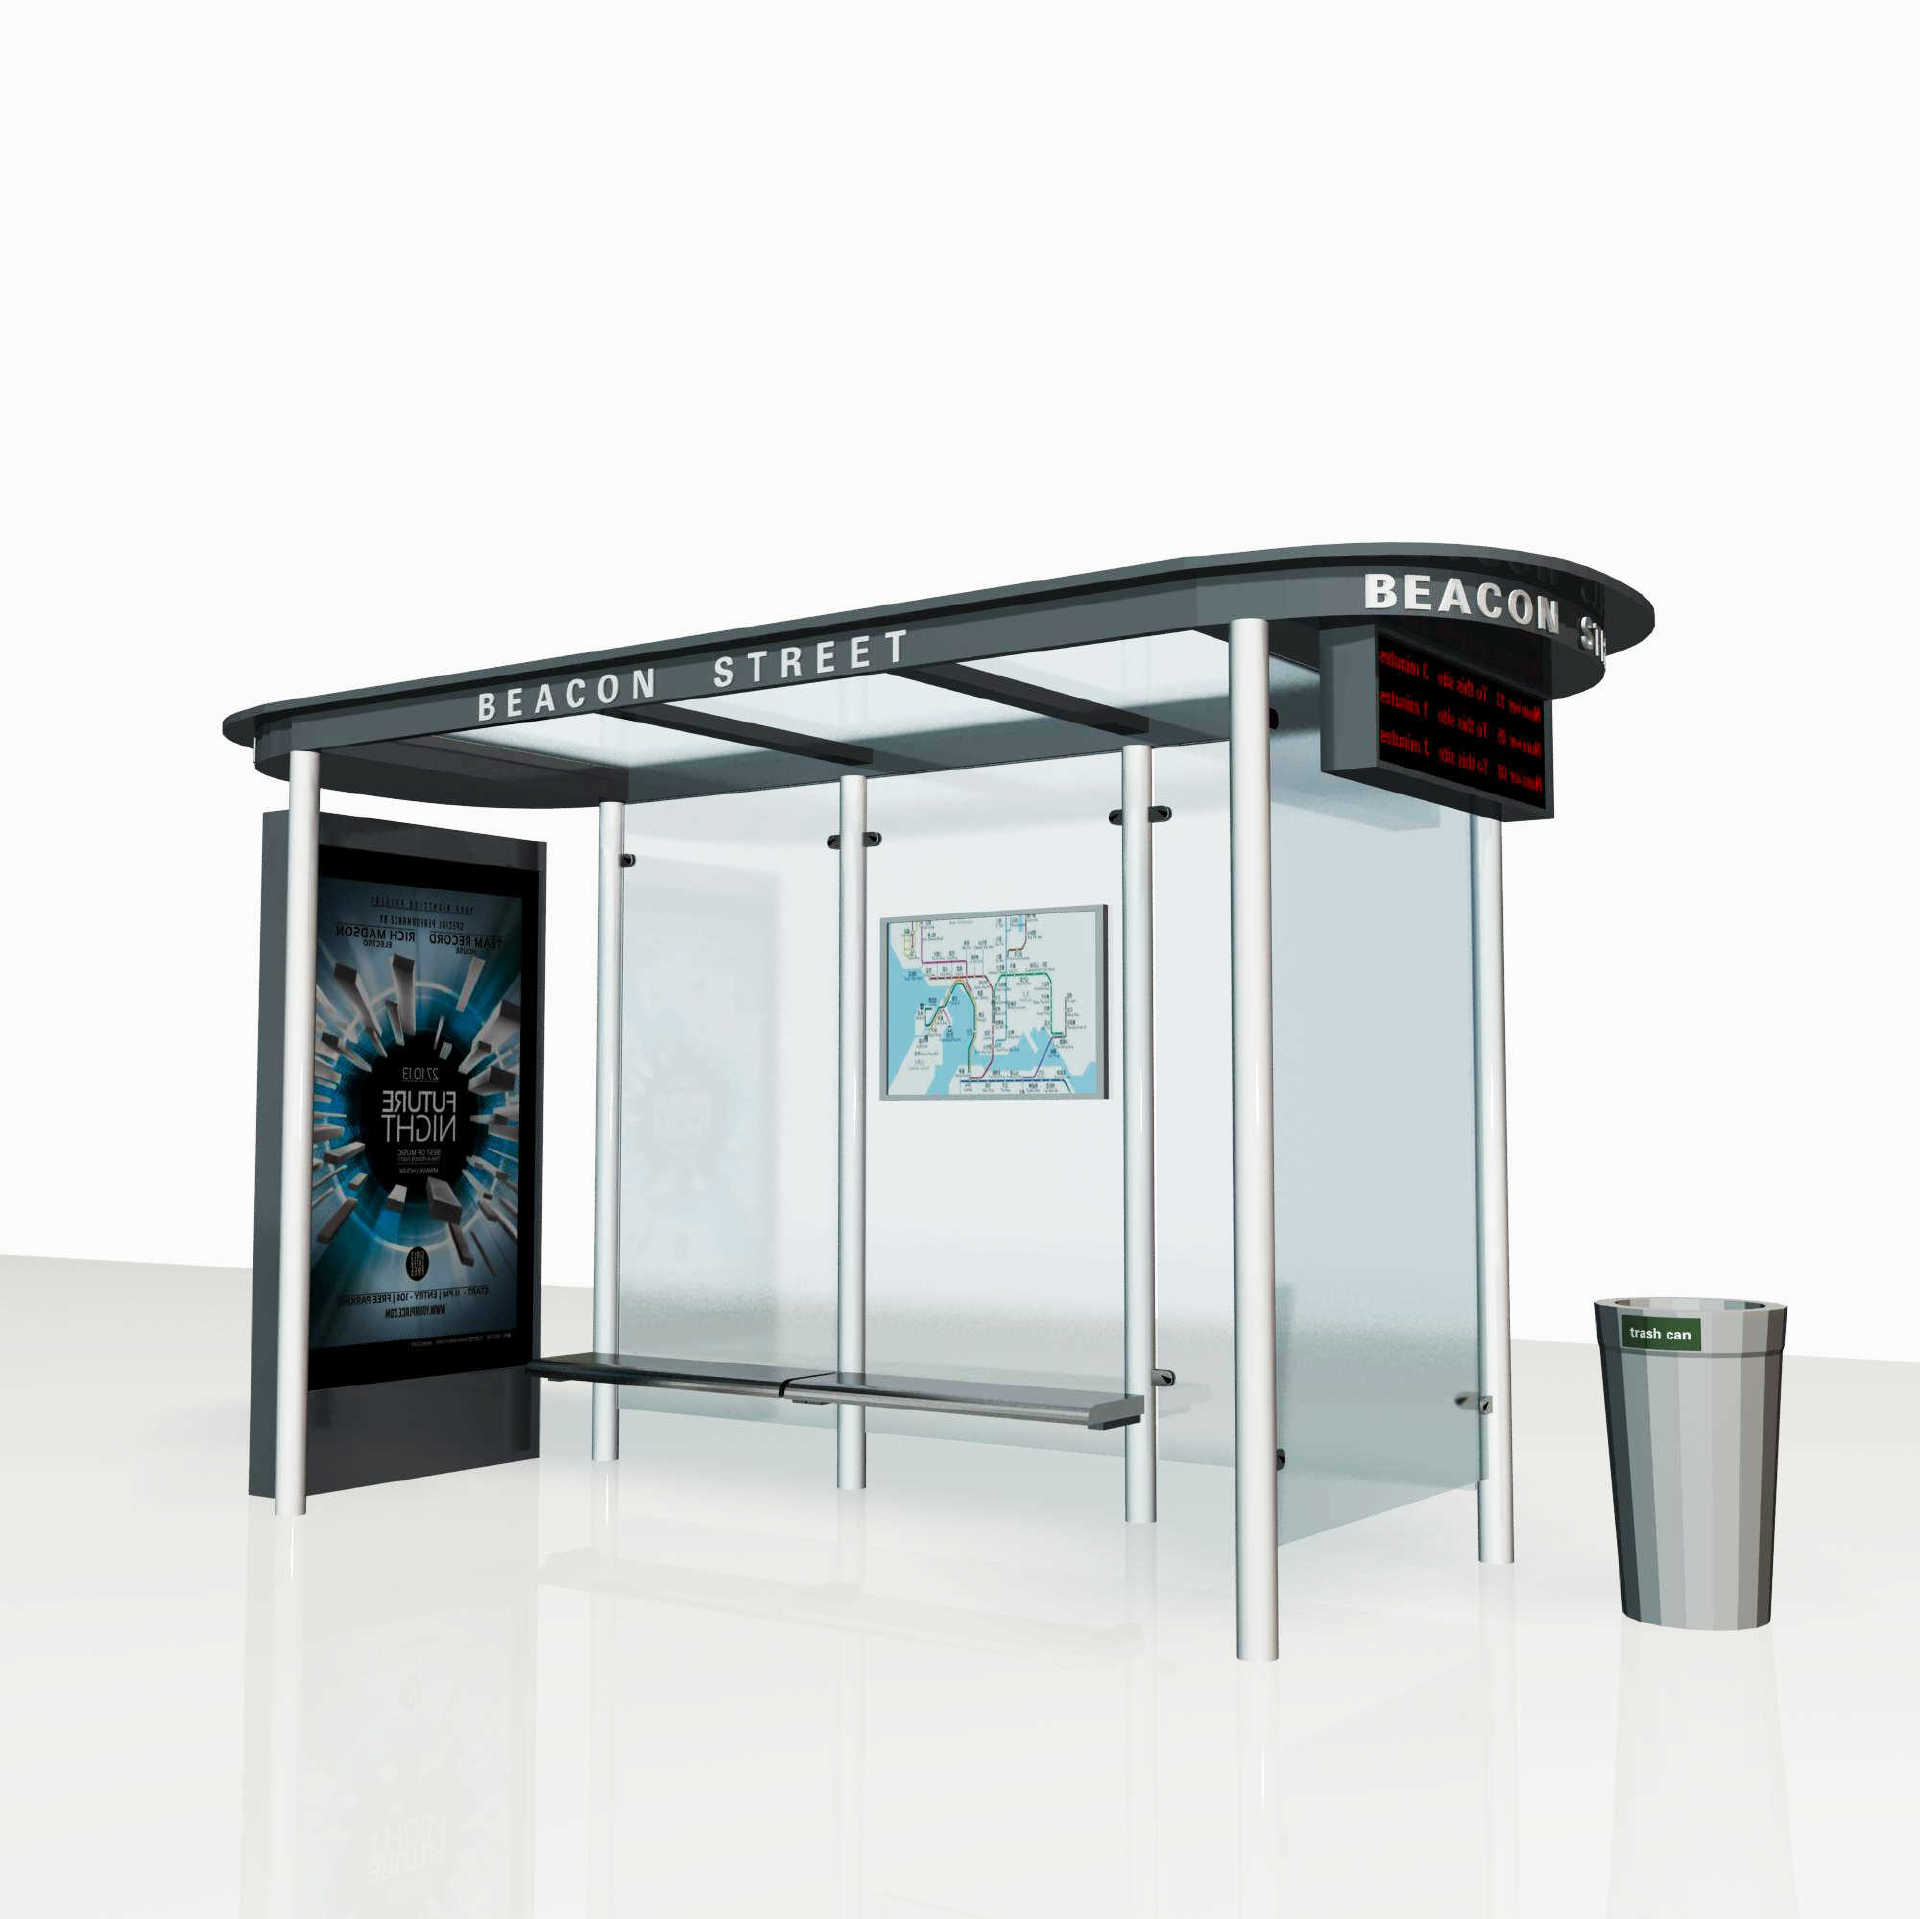 Tempered glass back outdoor advertising bus stop shelter A01